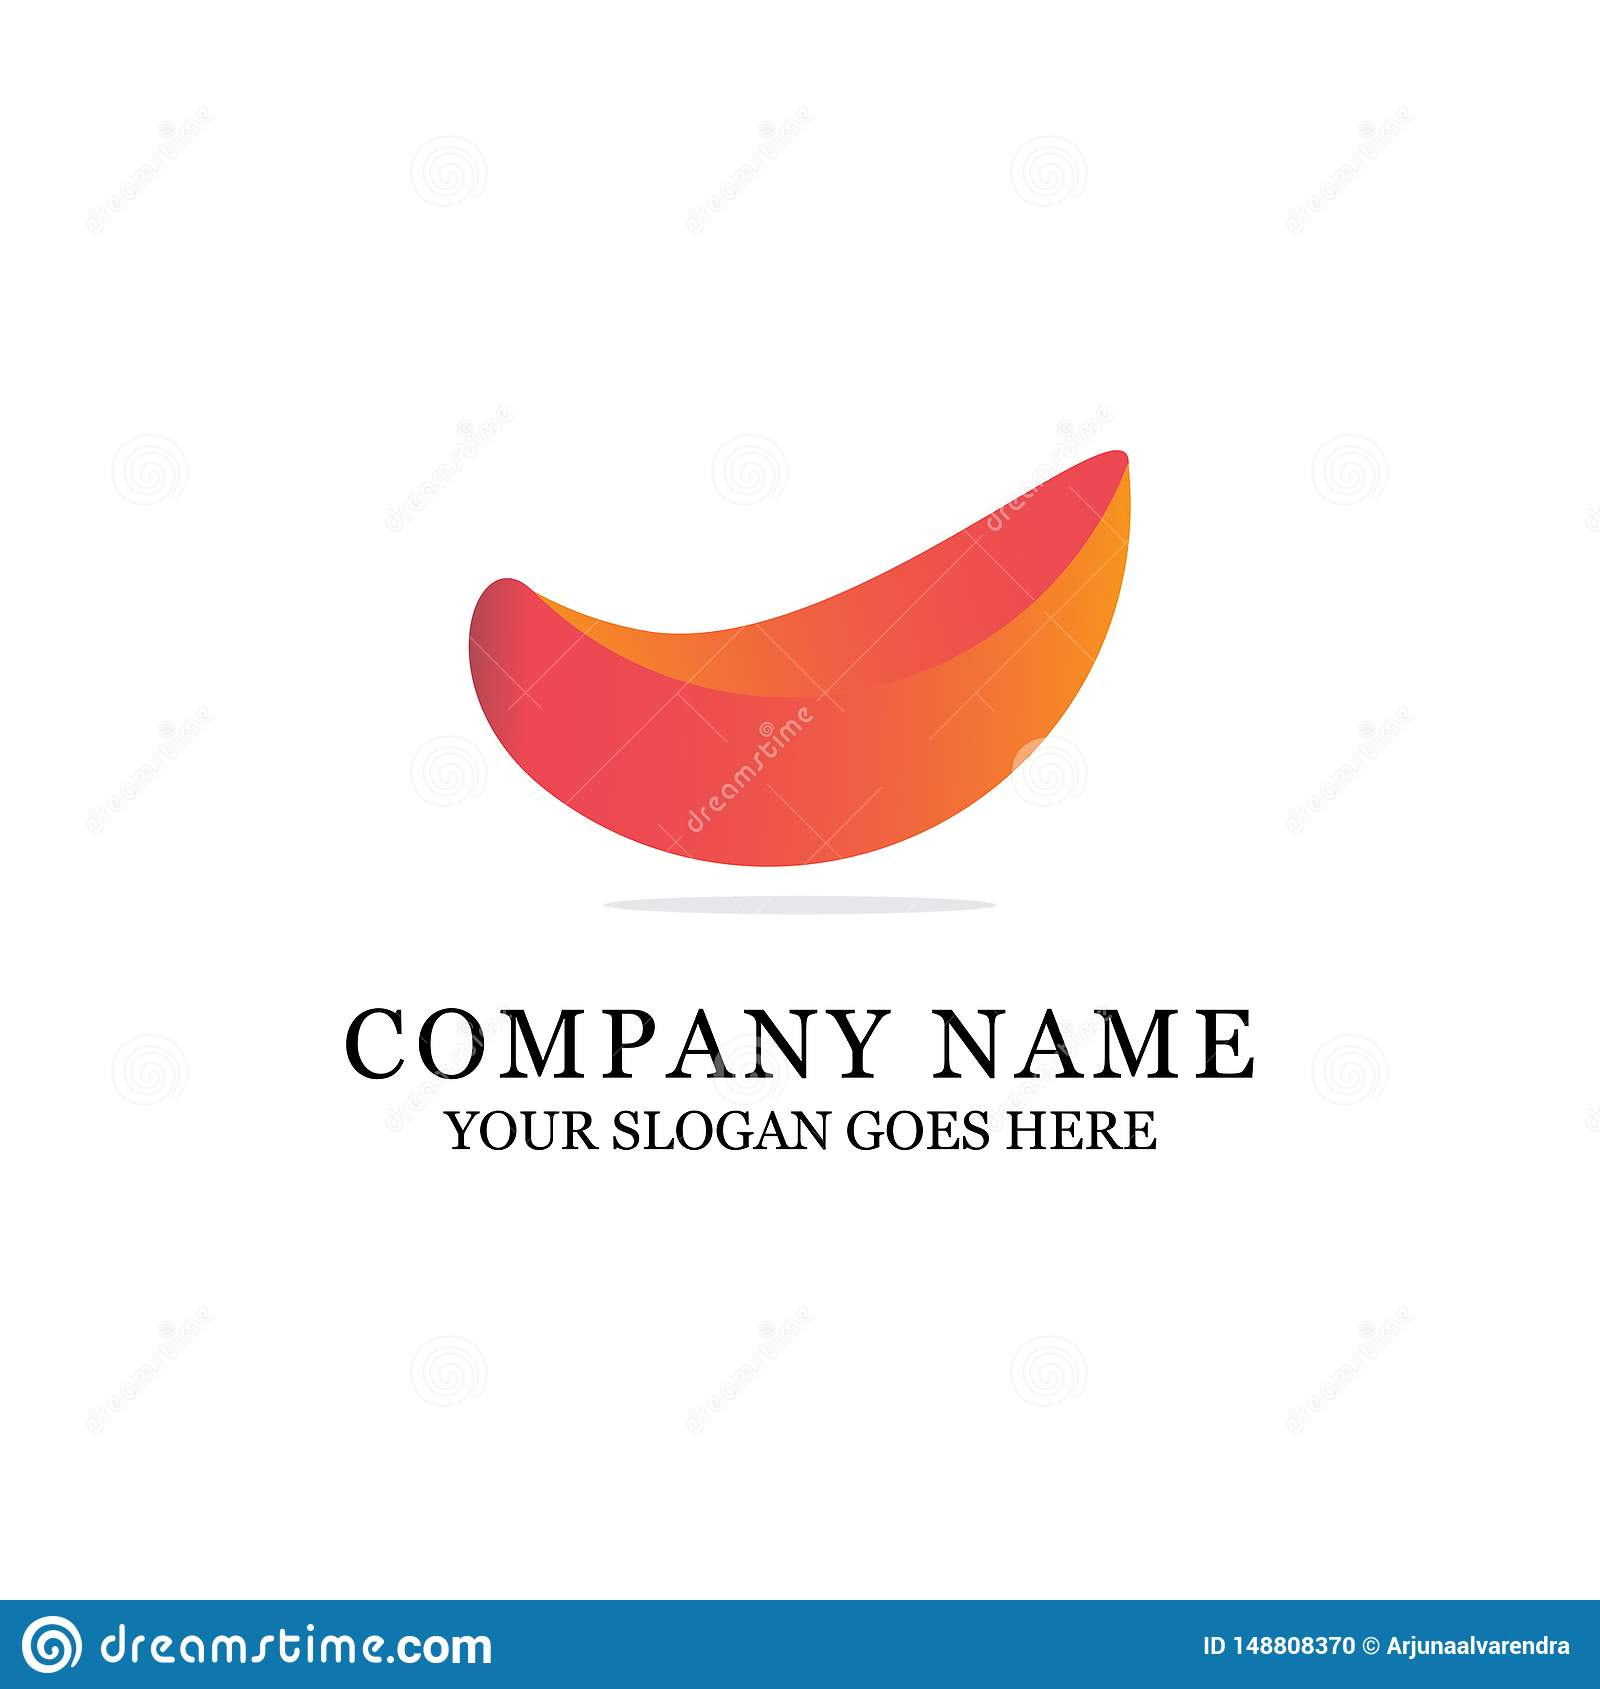 Modern Abstract logo design, orange gradient